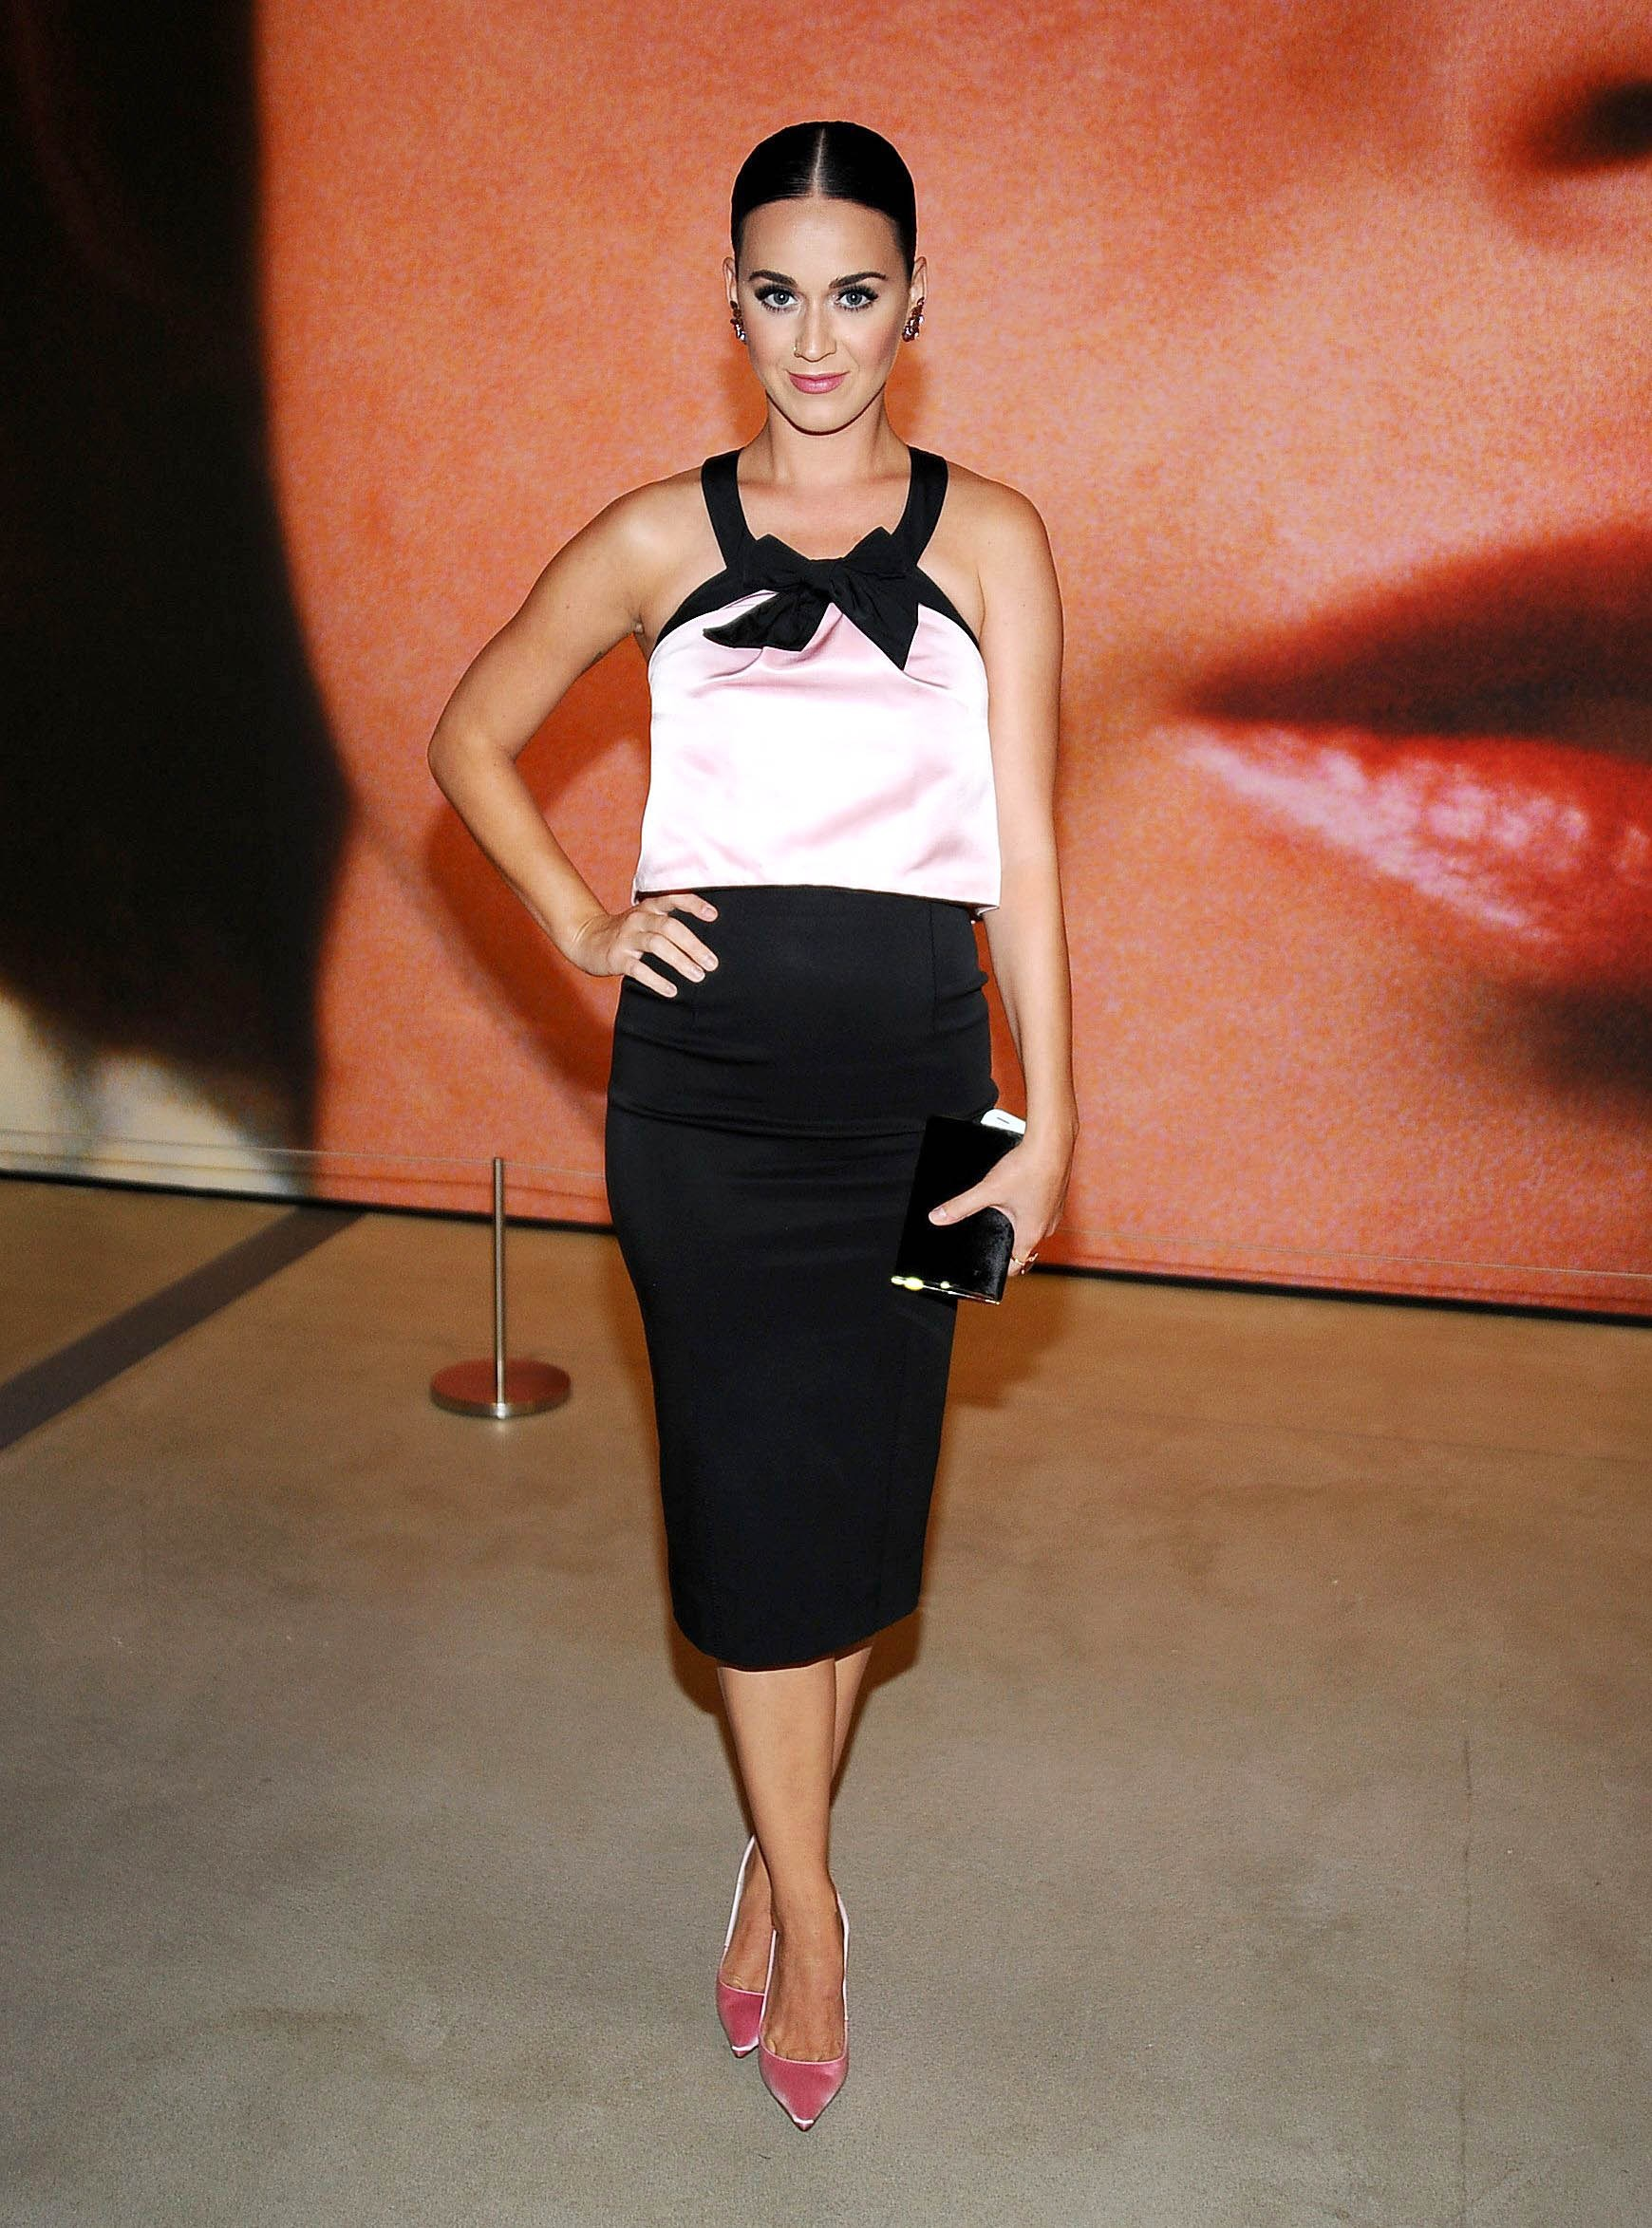 Katy Perry, more celebs pay a masseuse to bite them?!